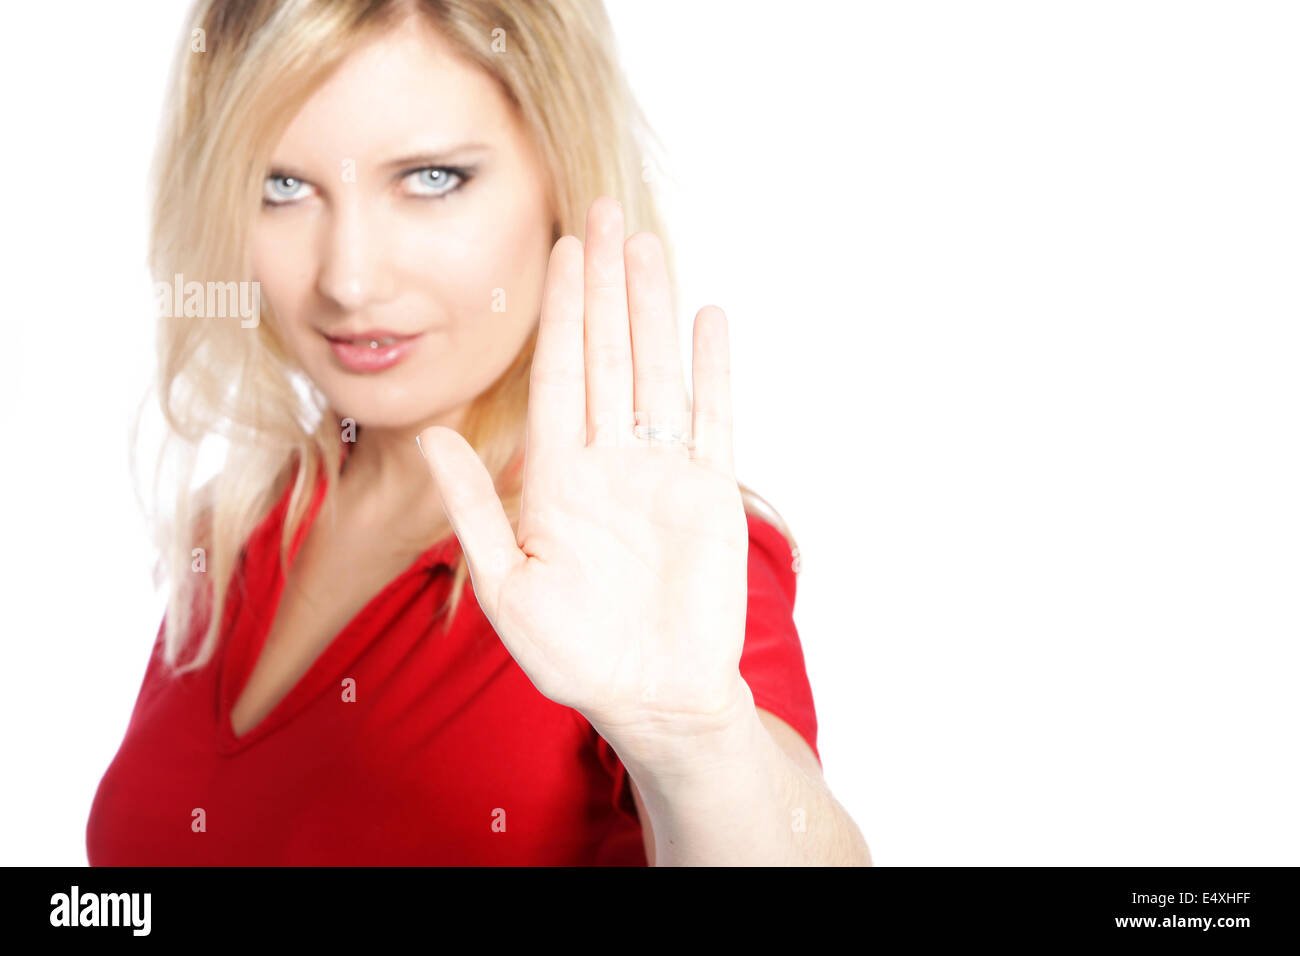 Woman making a cease and desist gesture - Stock Image